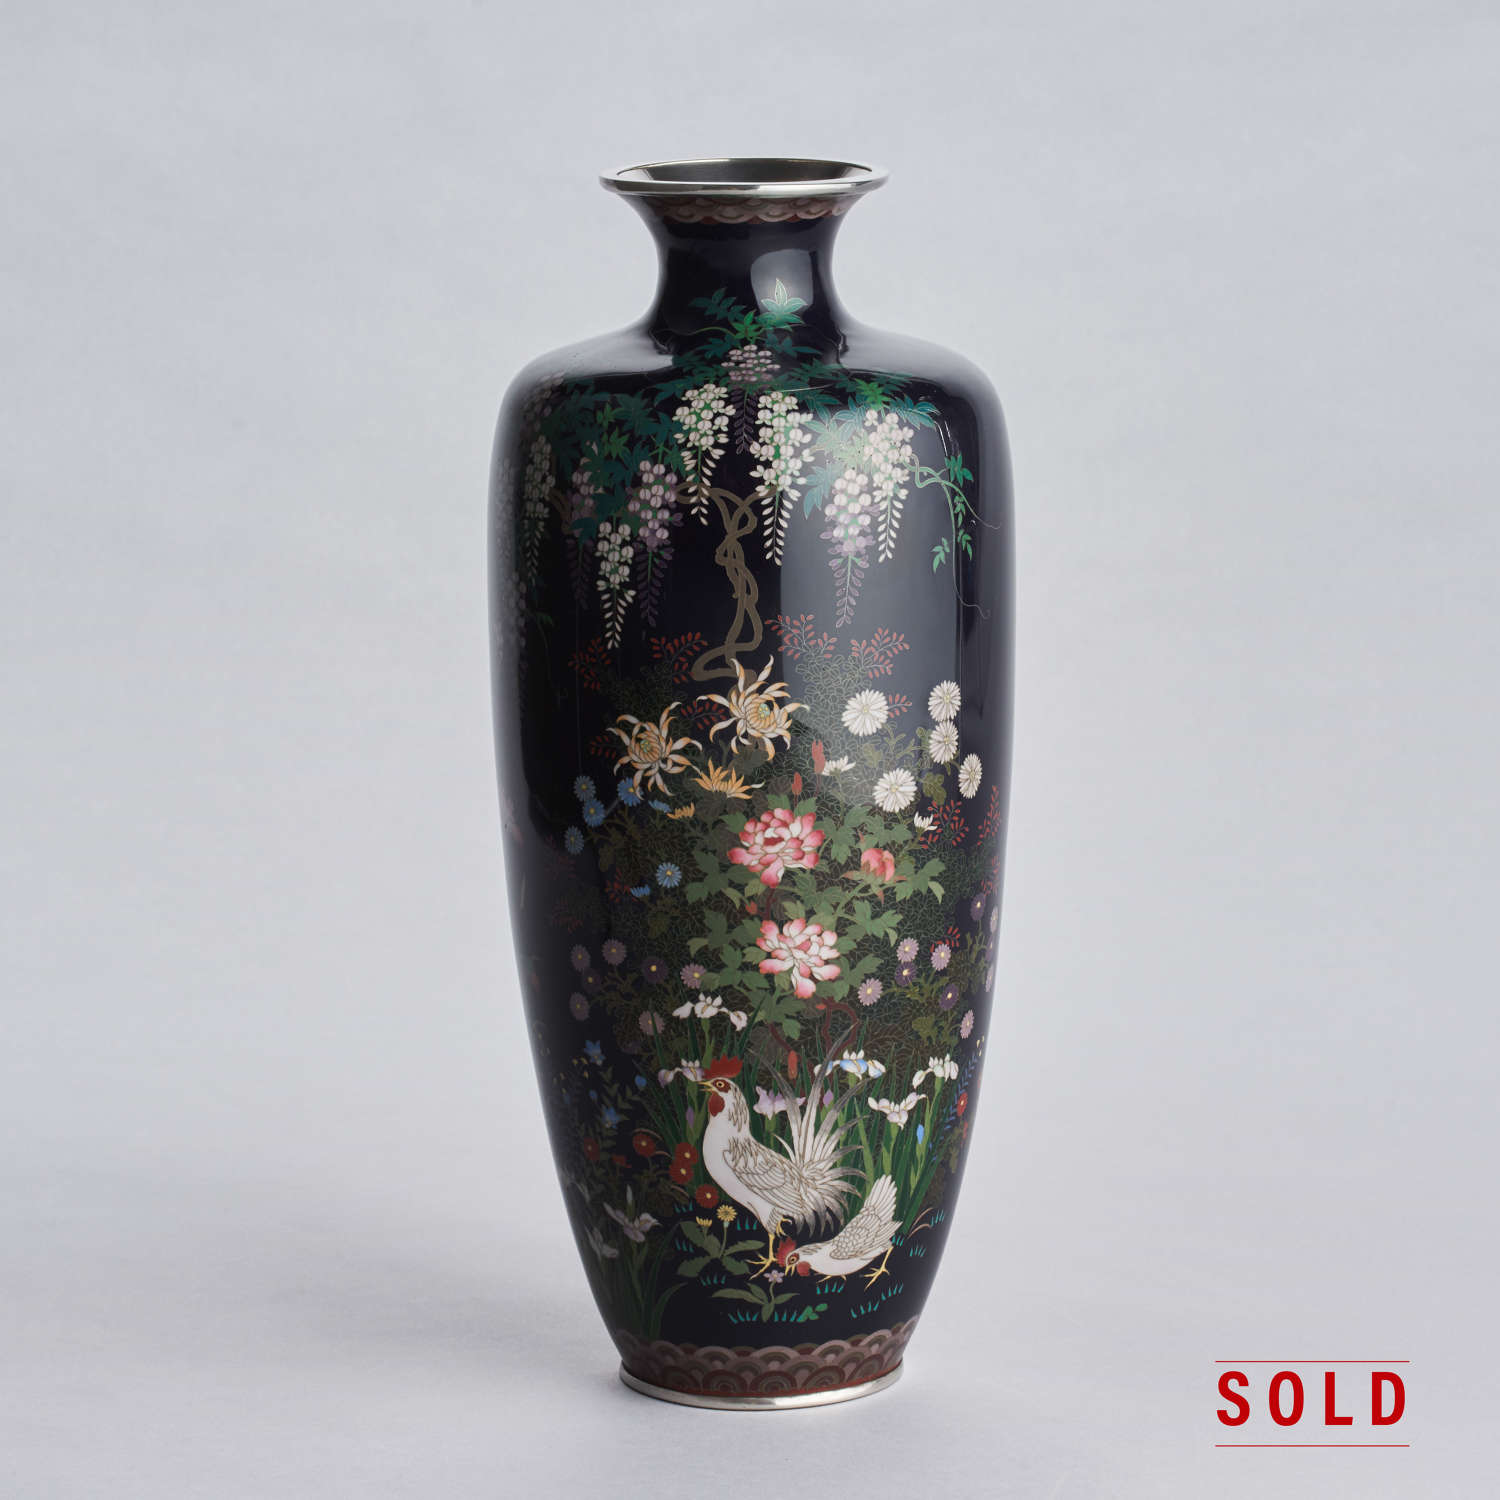 Japanese cloisonné enamel vase with rooster and hen Meiji period